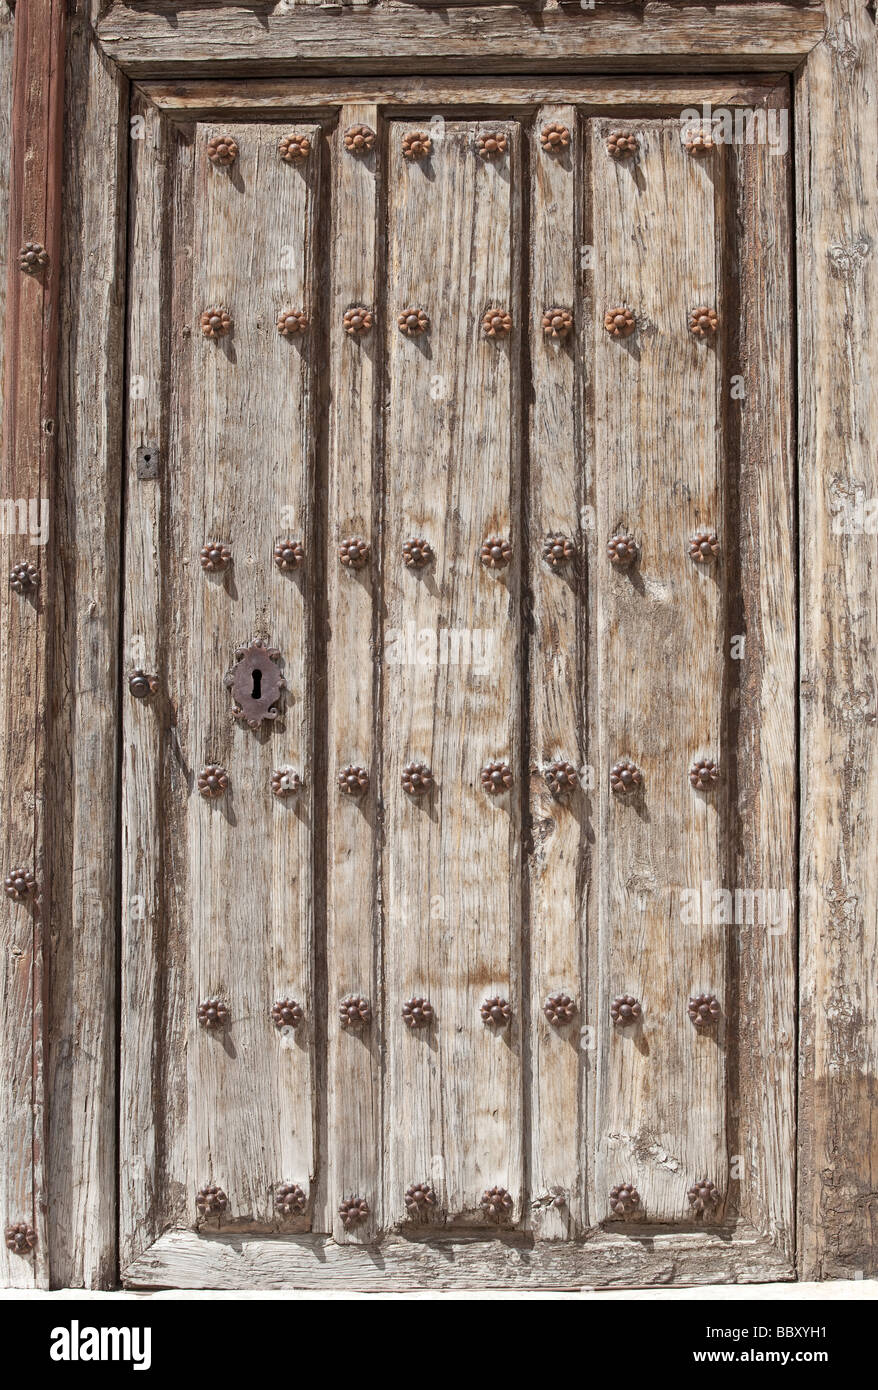 Detail of weathered door with keyhole - Stock Image